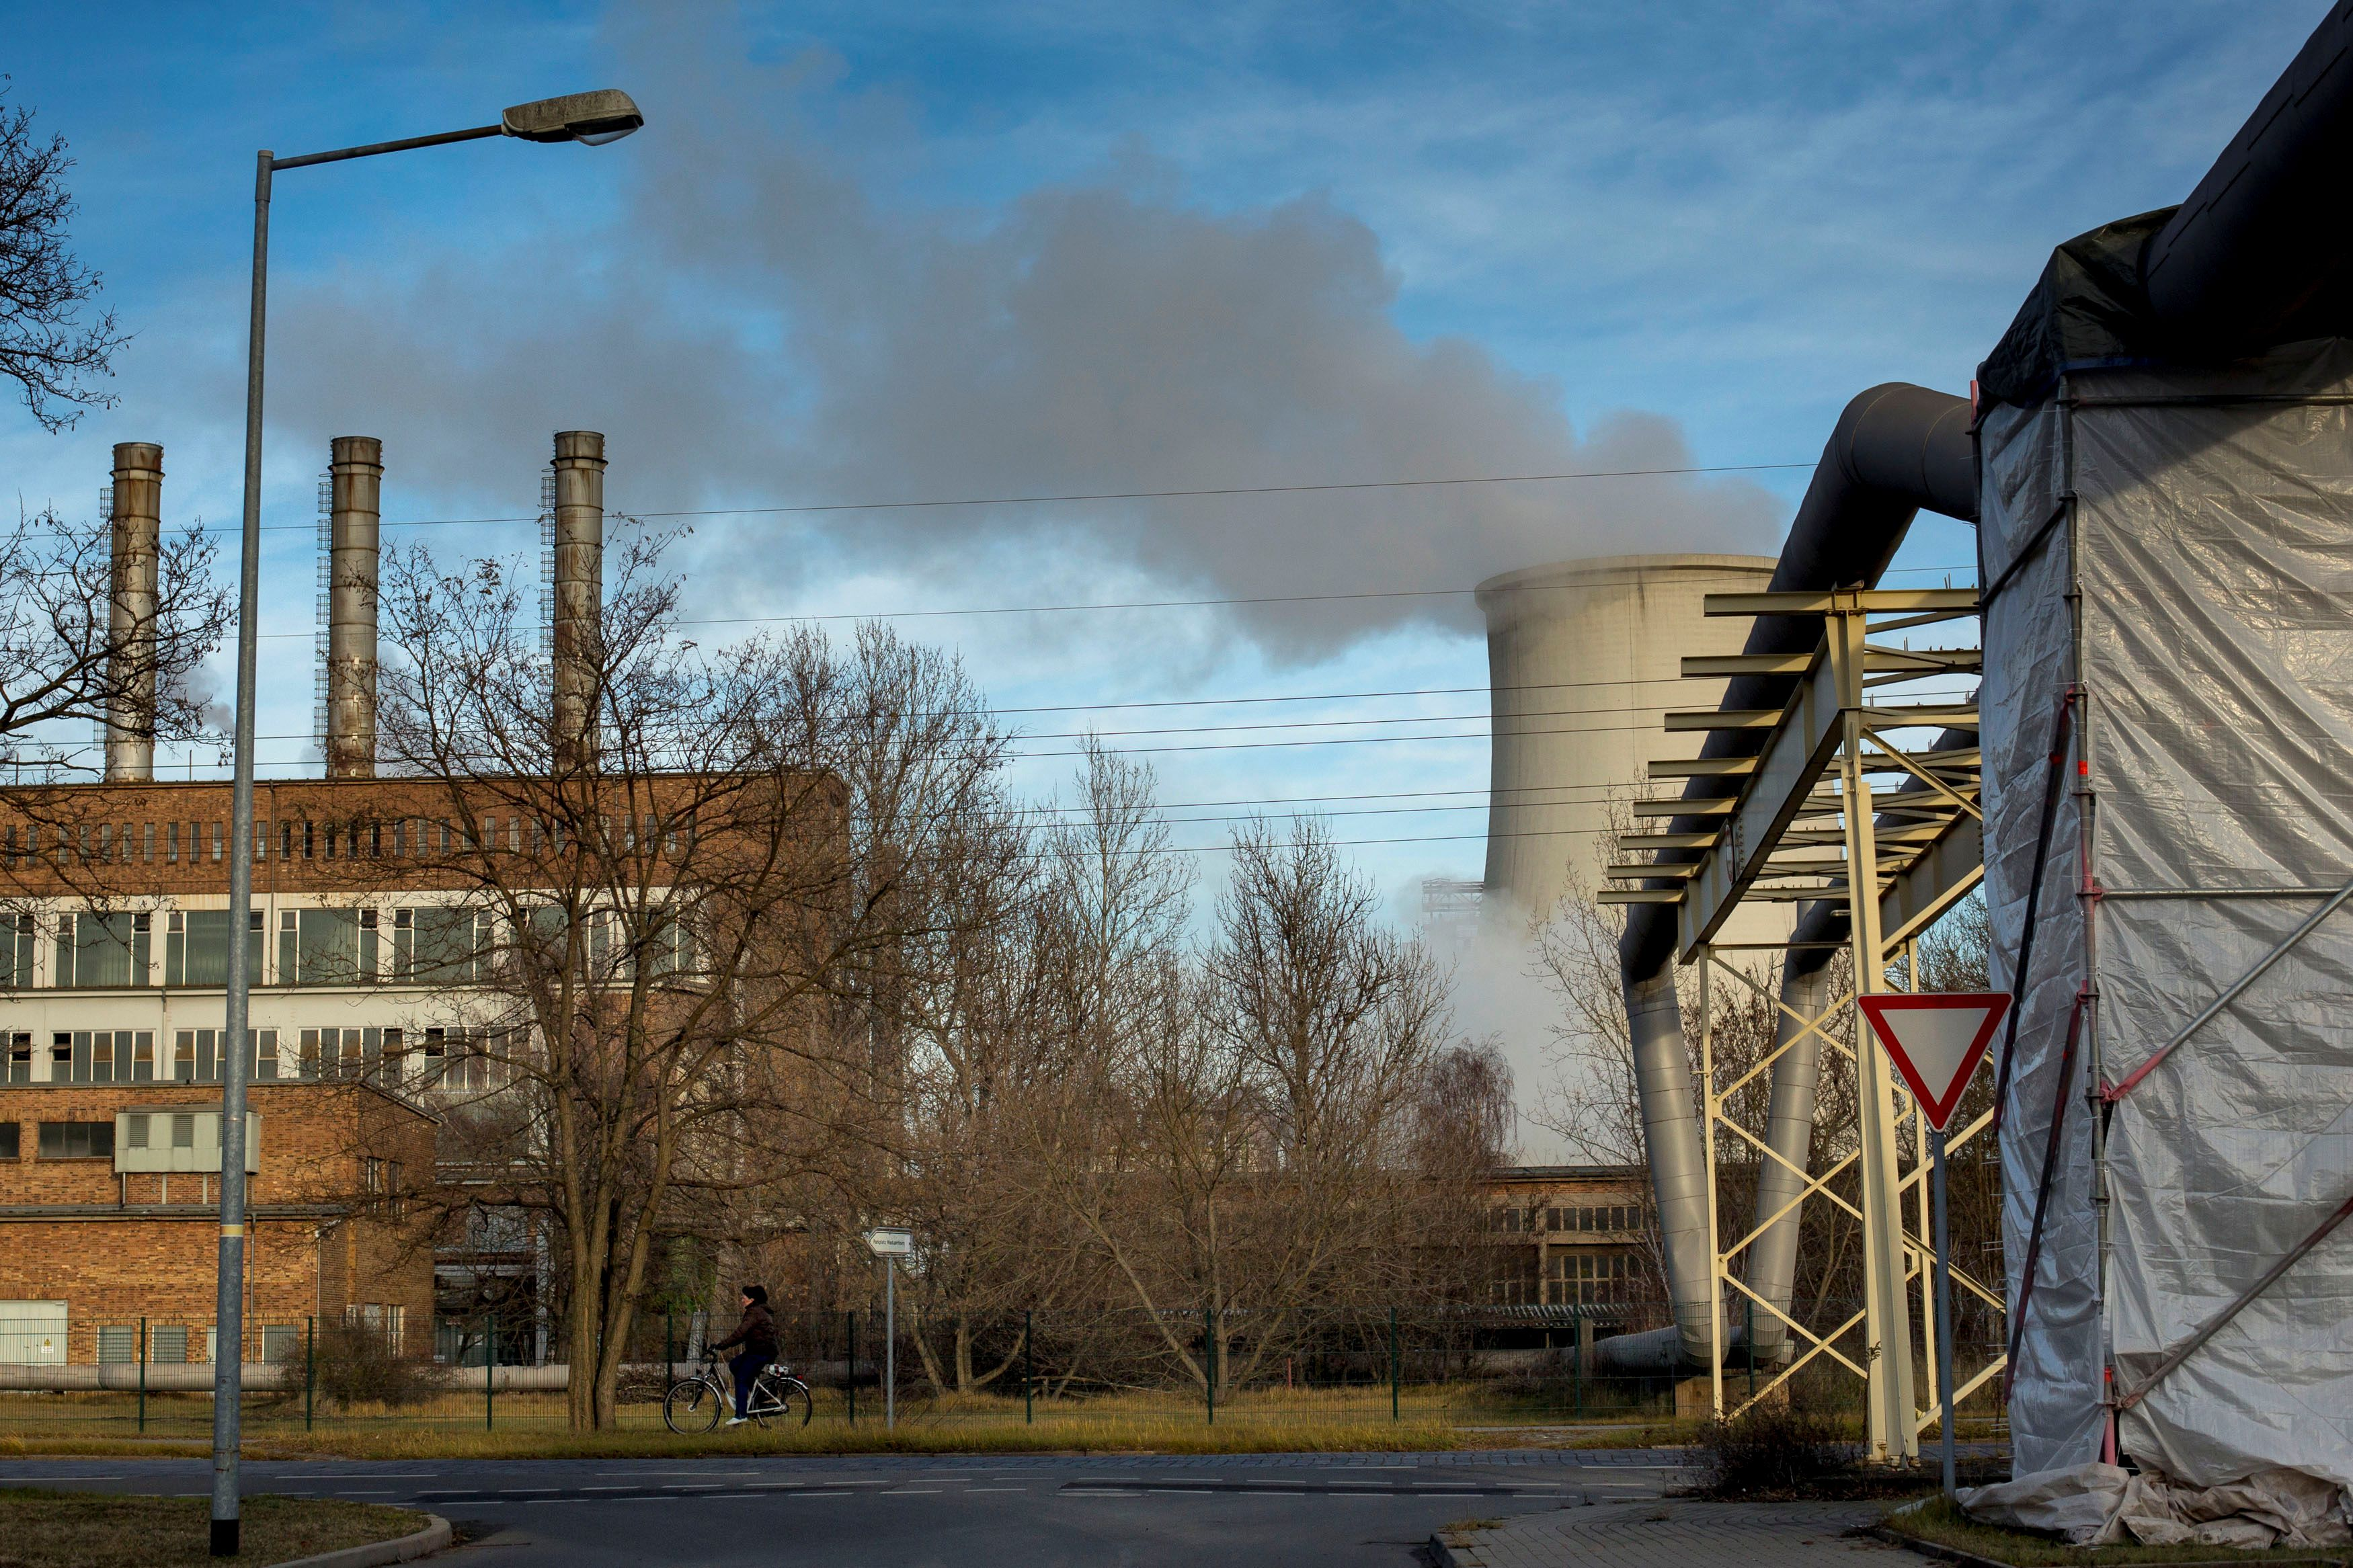 A woman cycles past a power station that is attached to the ArcelorMittal steel factory in Eisenhuettenstadt, 124 km (77 miles) east of Berlin November 26, 2012.REUTERS/Thomas Peter/File Photo